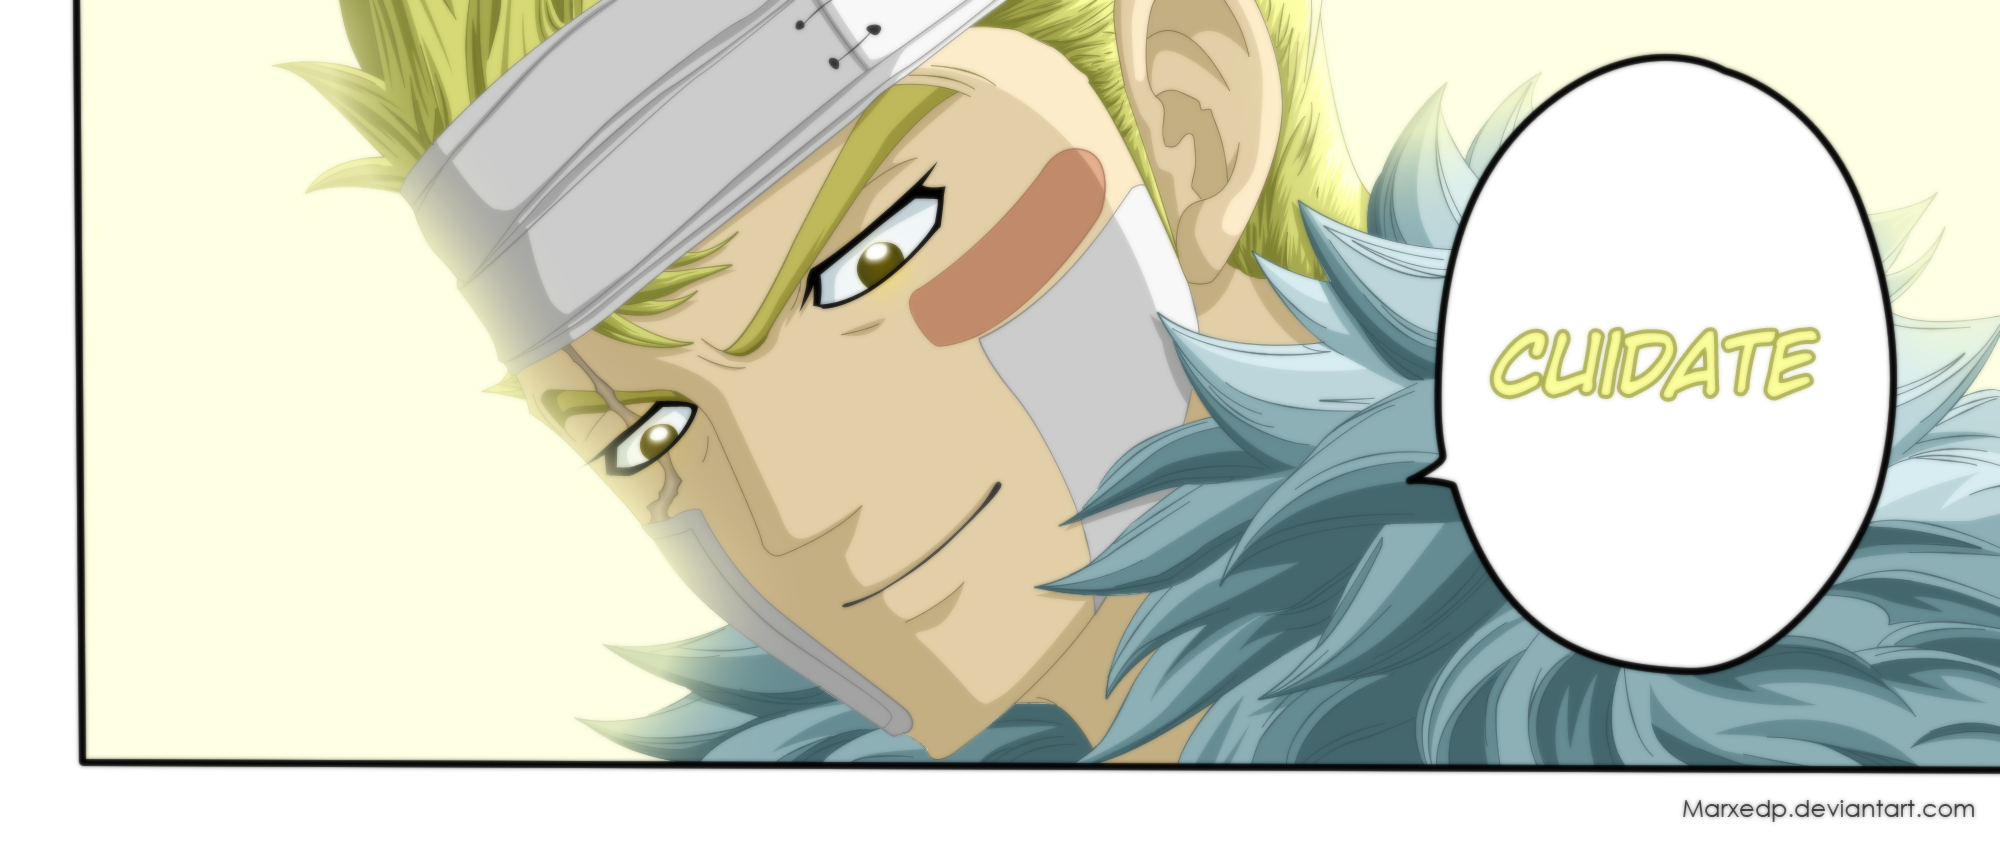 Laxus - Fairy Tail by MarxeDP on DeviantArt